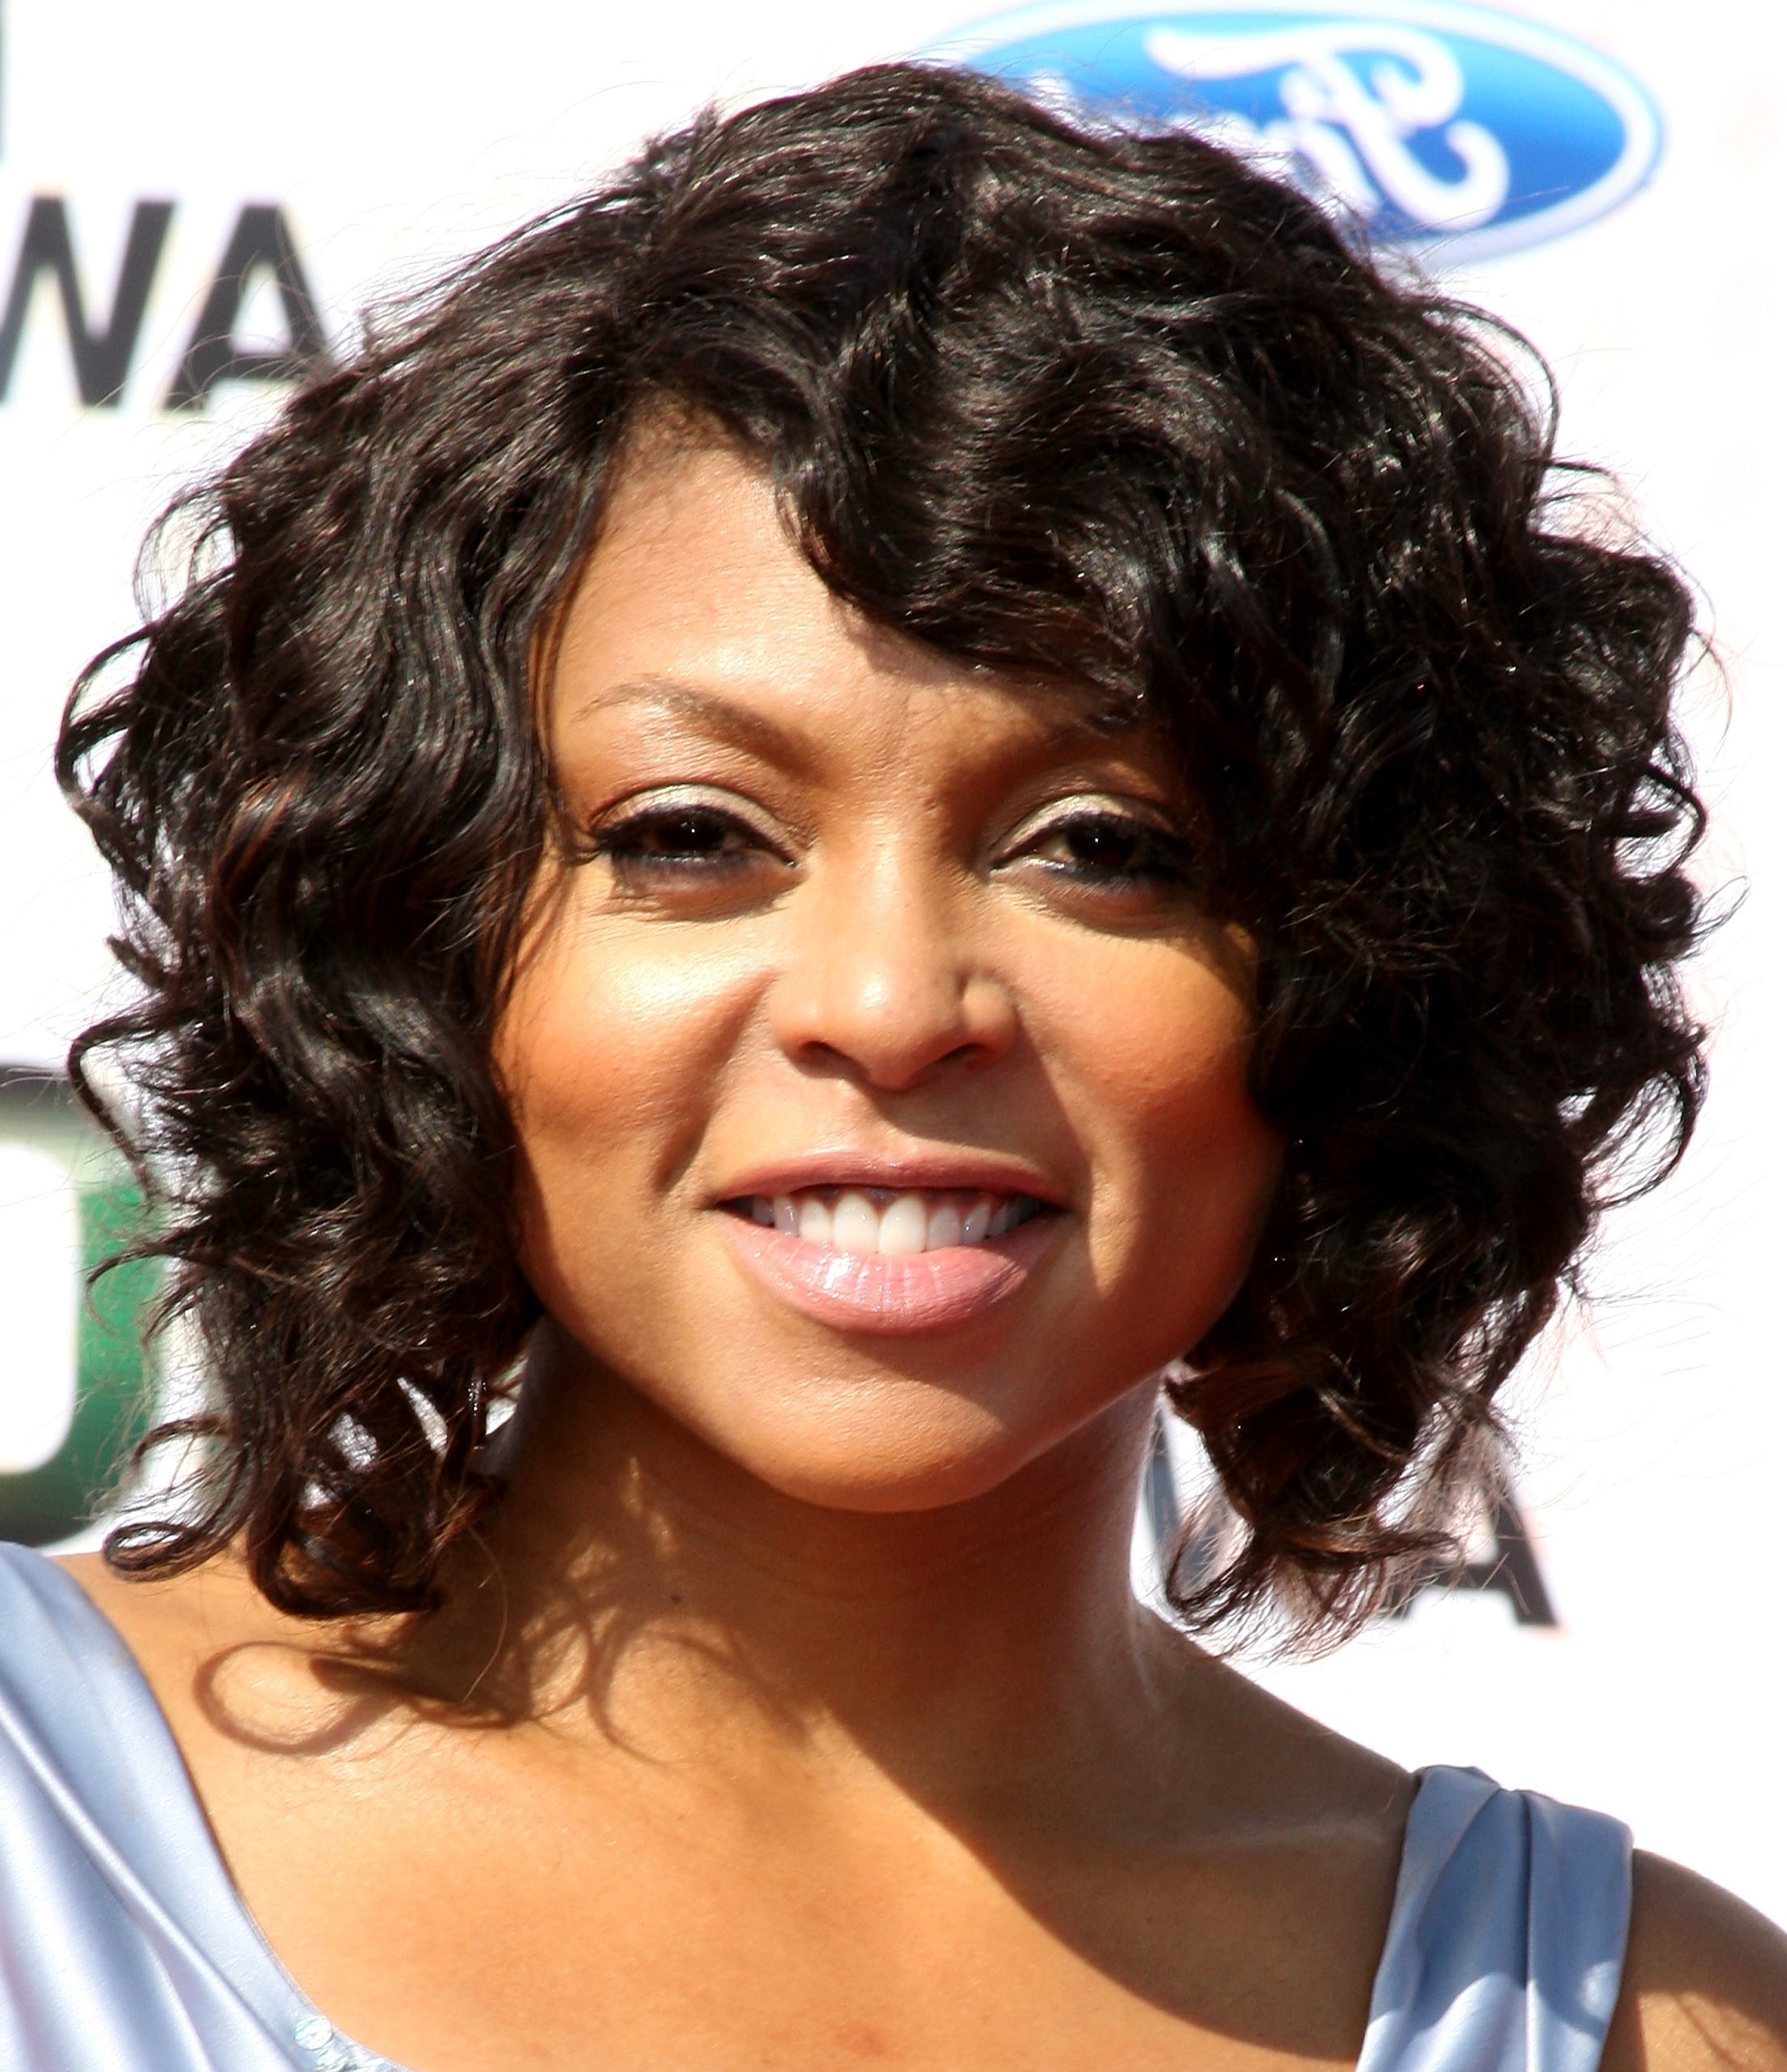 Short Curly Hairstyles For Black Women With Round Faces – Hairstyle With Regard To Short Haircuts For Round Faces Black Women (View 12 of 25)